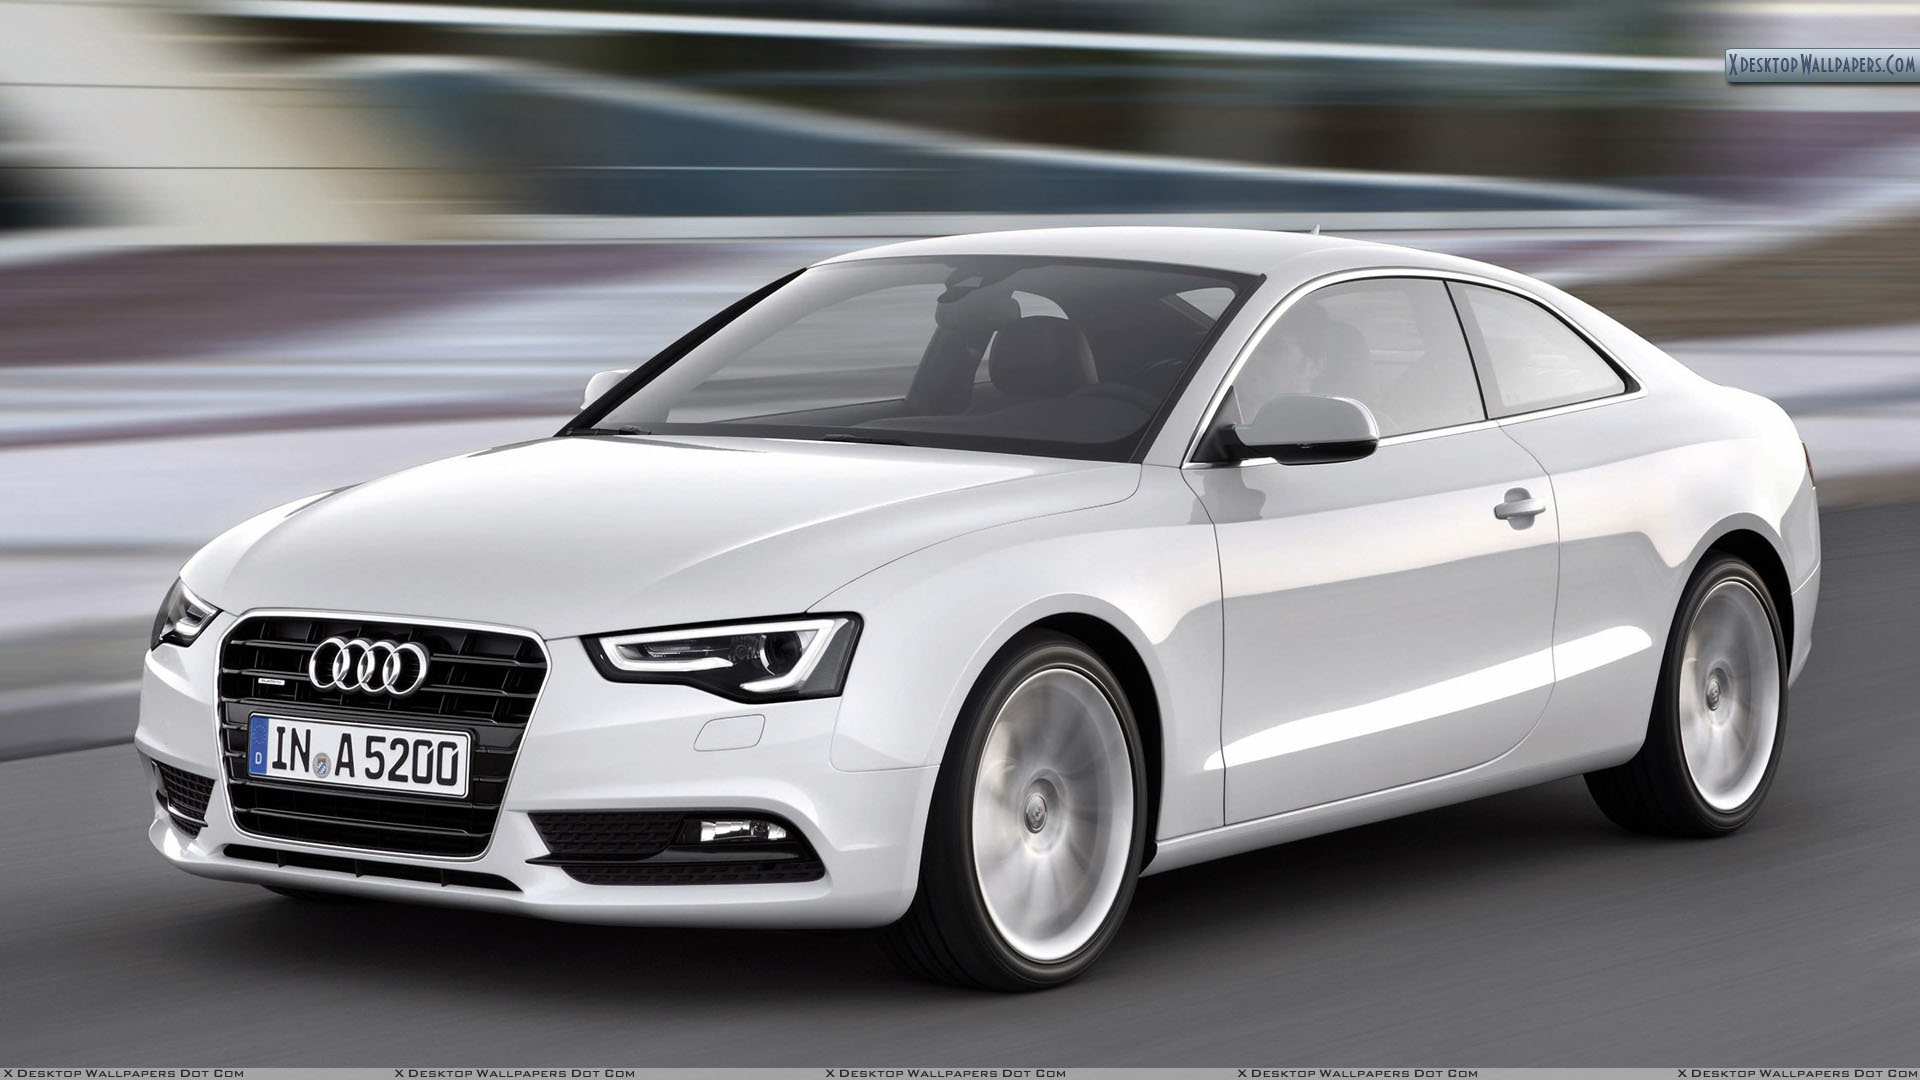 White Audi A5 Cabriolet